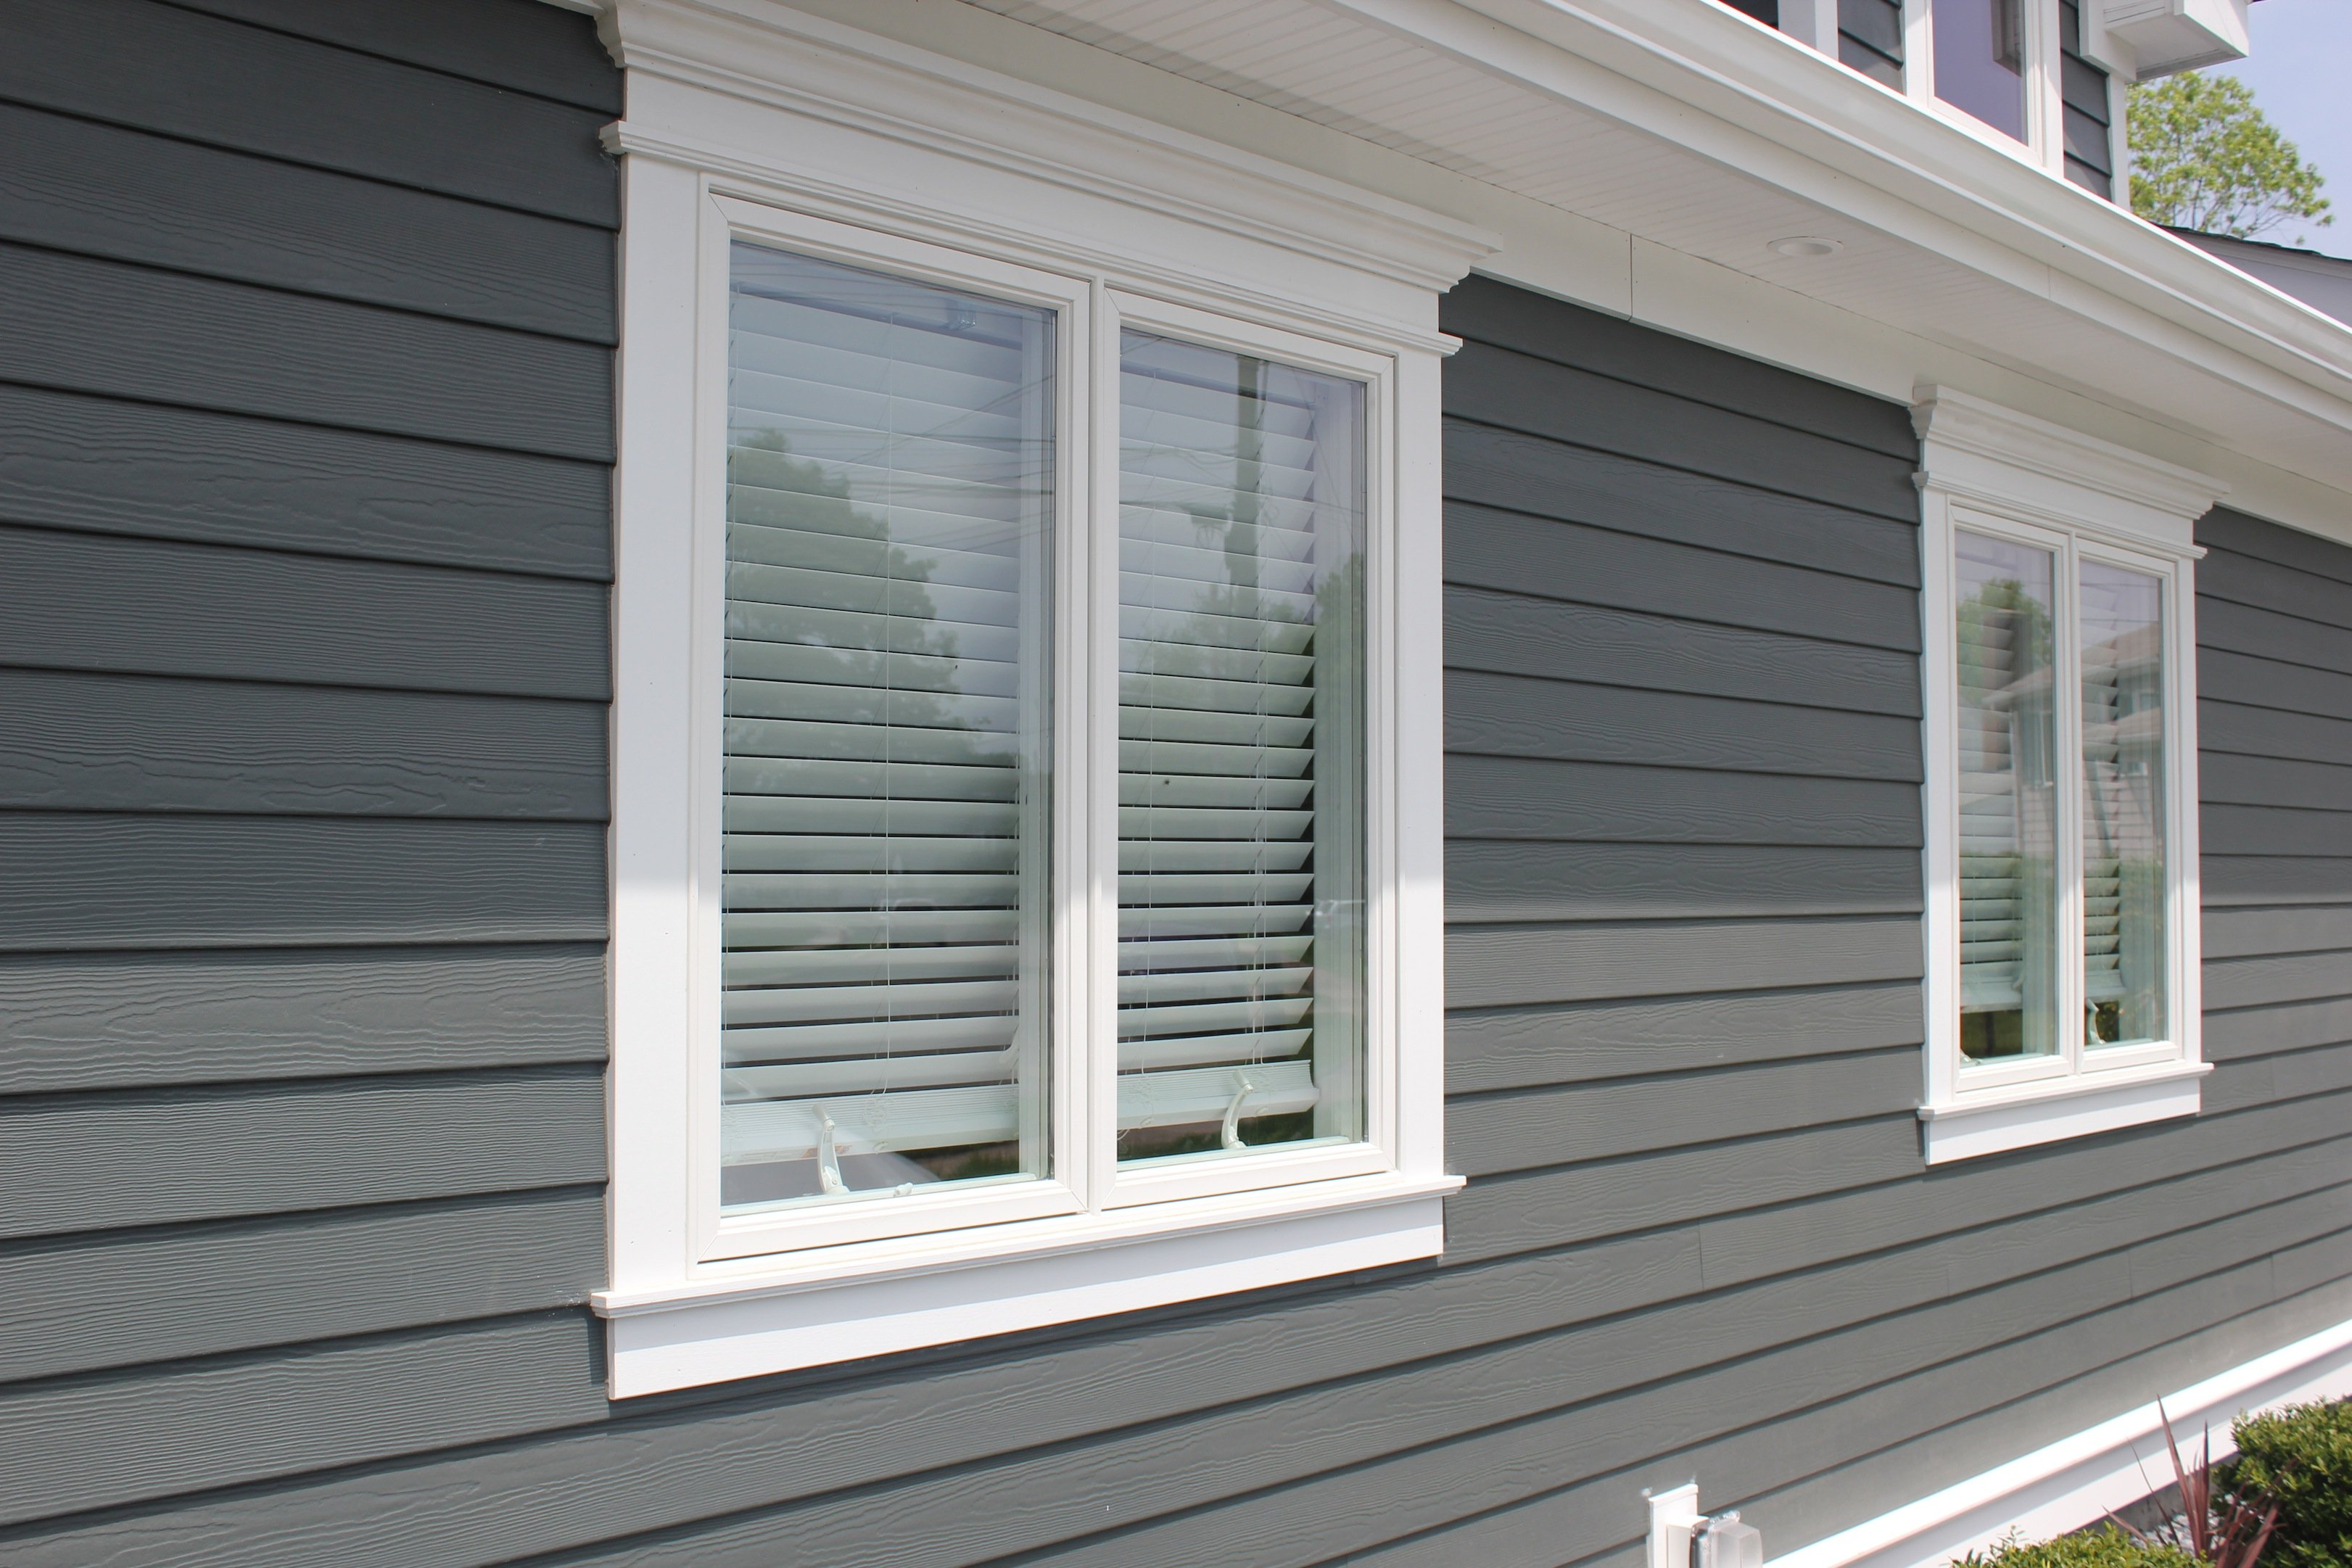 Siding Contractor in Cedar Rapids, IA